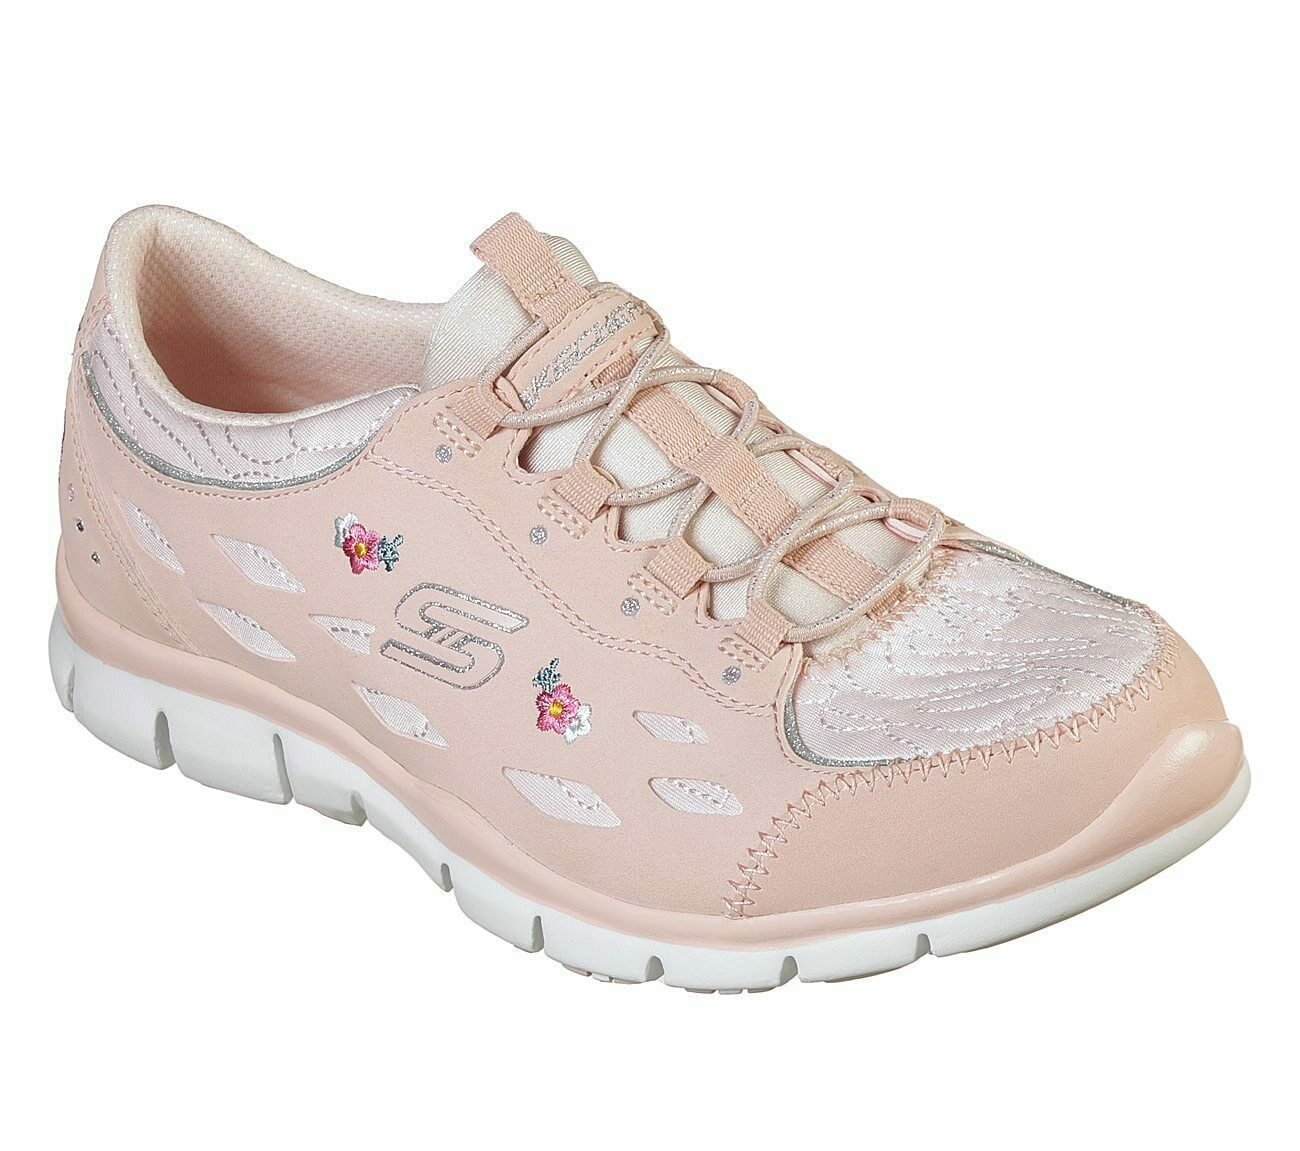 Primary image for Skechers Pink Shoes Memory Foam Women Sporty Floral Comfort Casual Slip On 23775